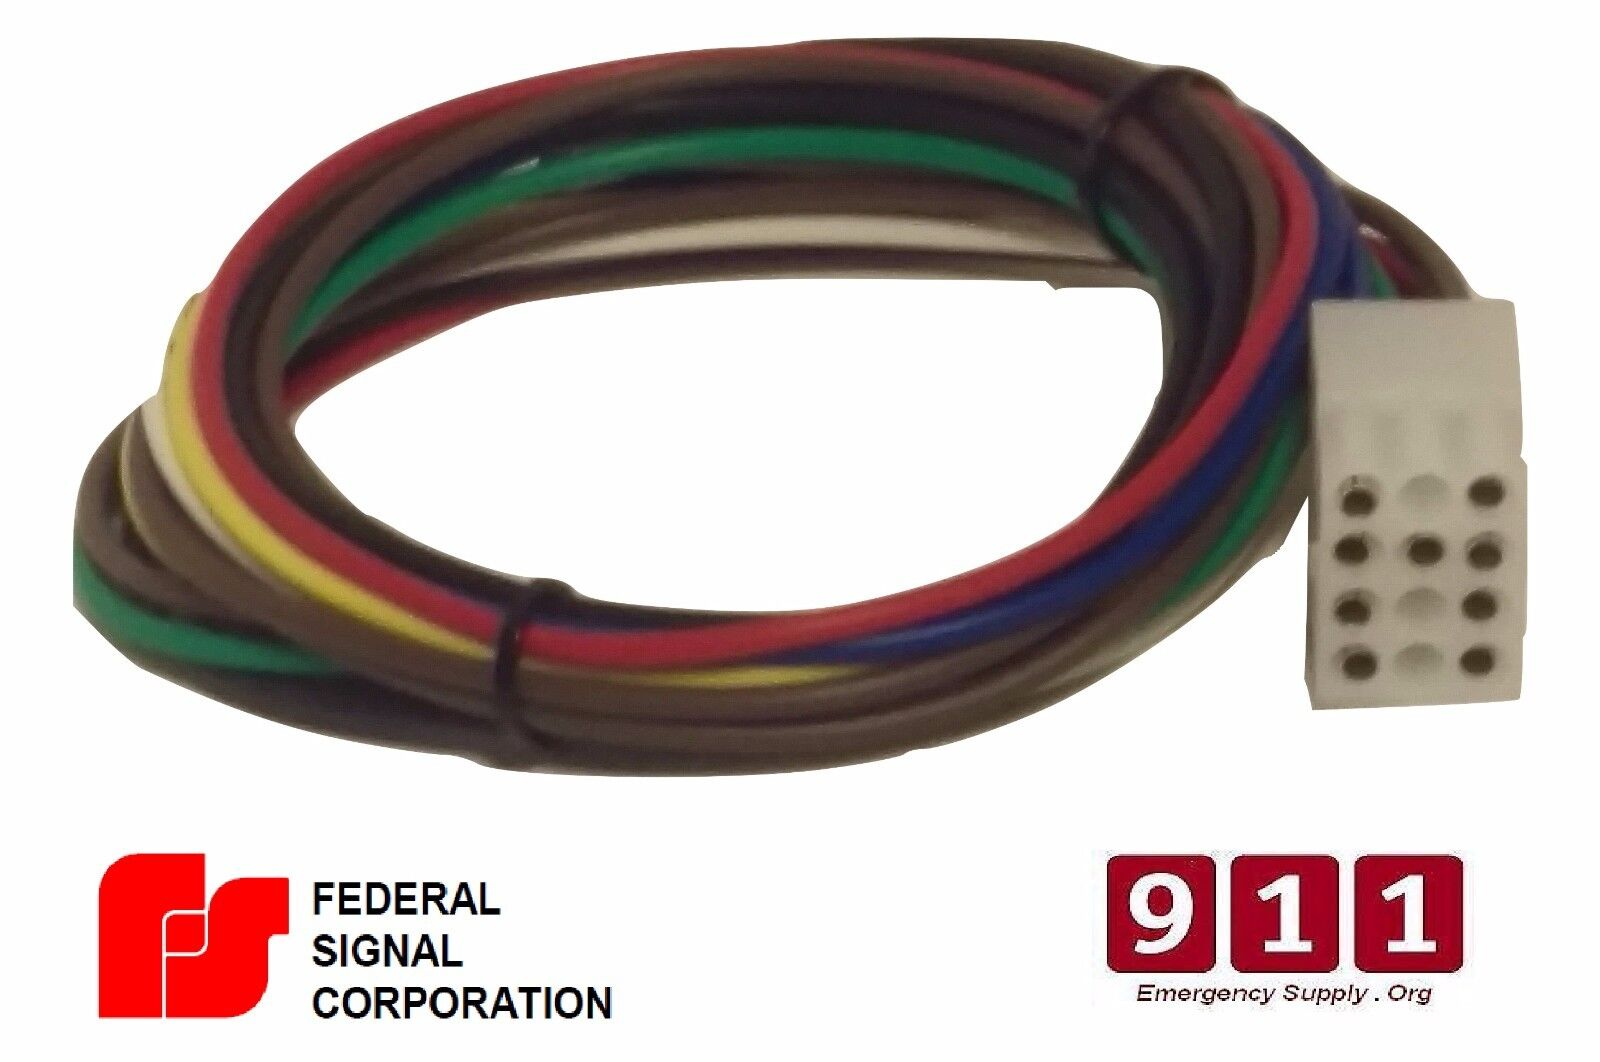 Federal Signal Replacement Siren Power Harness Plug Cable 12 Pin 1 Whelen 295hfsa5 Wiring Diagram Norton Secured Powered By Verisign